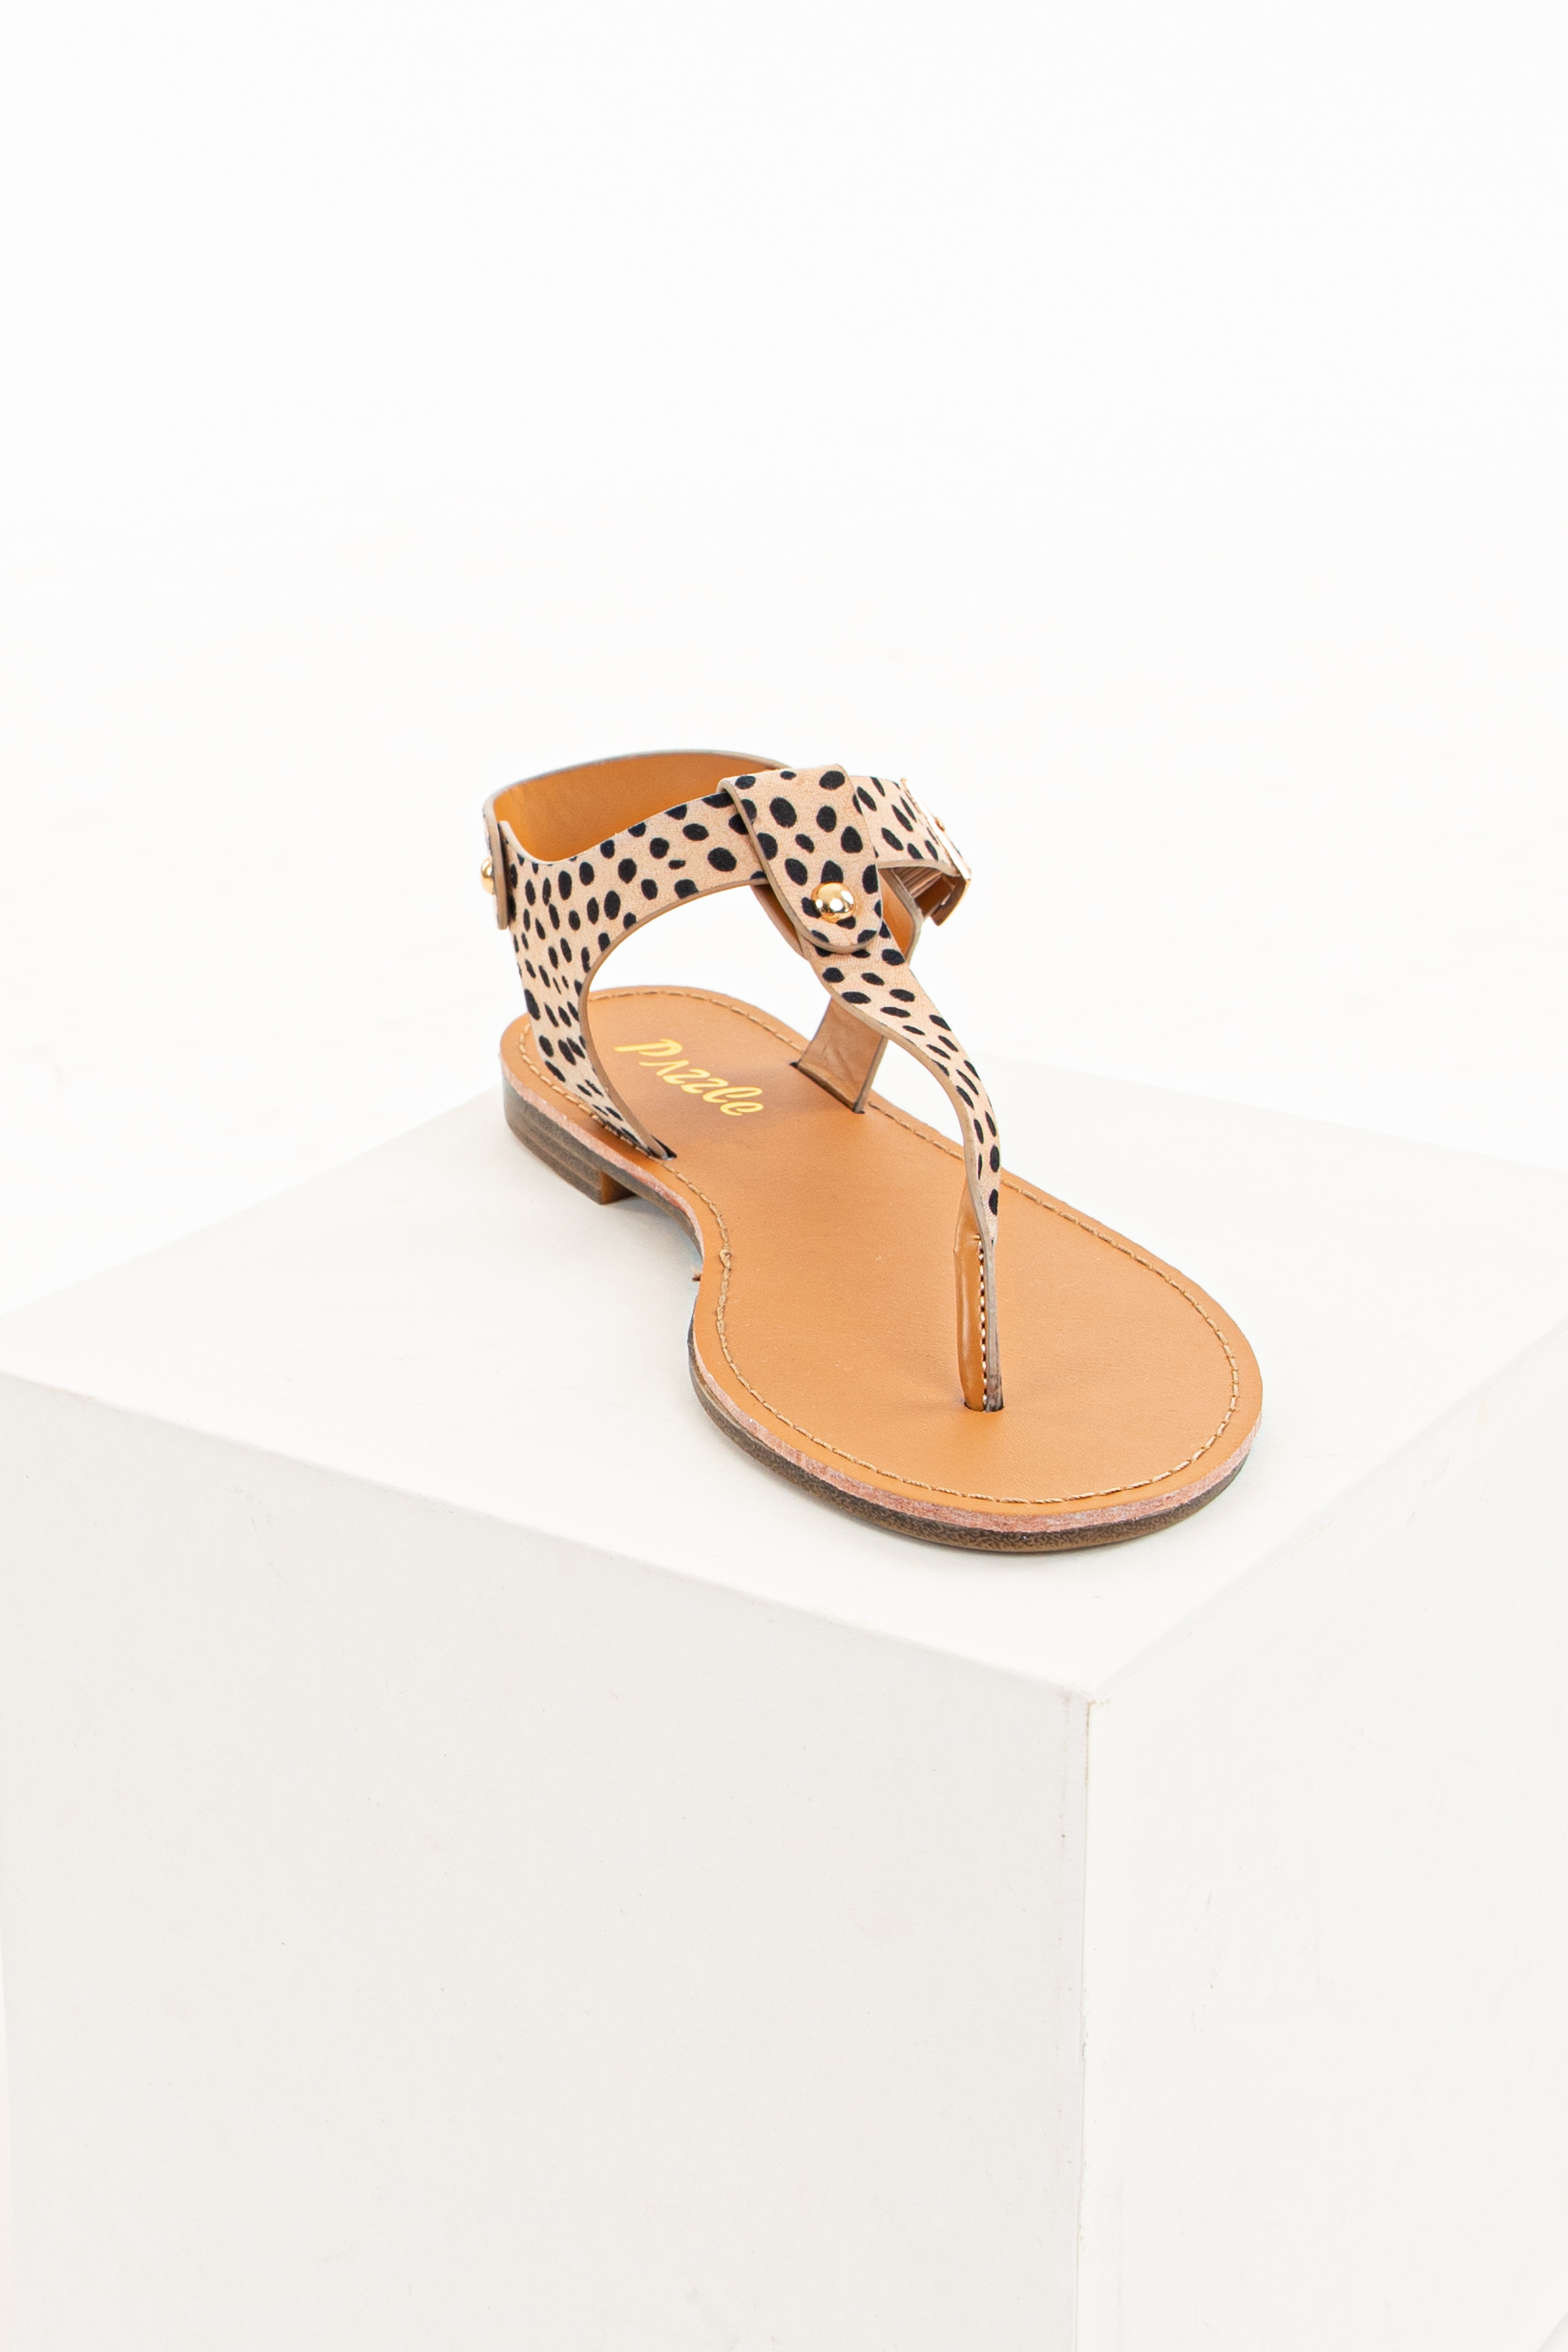 Tan Cheetah Print Sandals with Gold Stud Details and Buckle